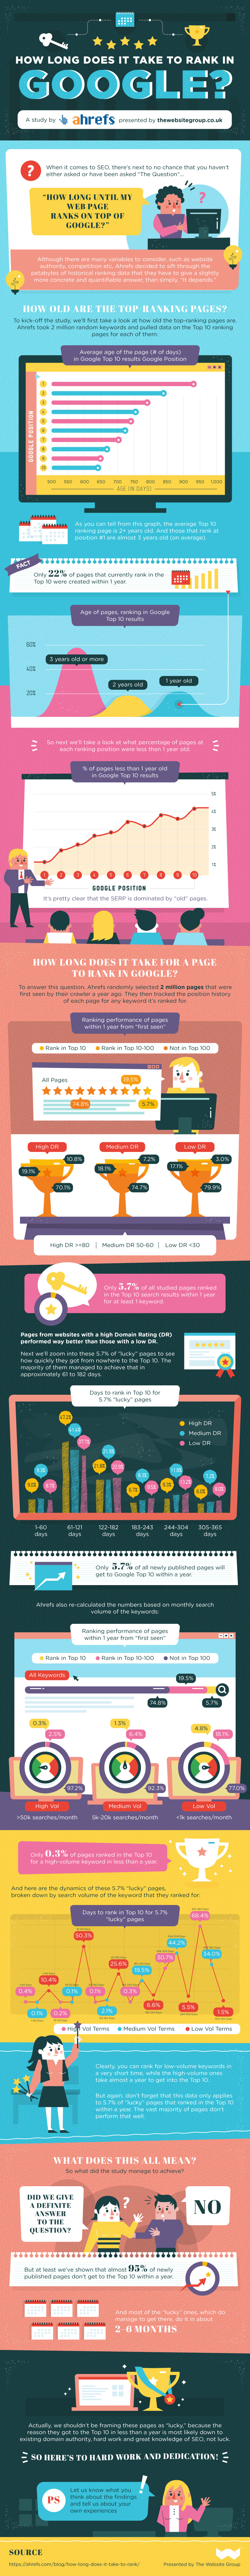 How long does it take to rank in Google infographic